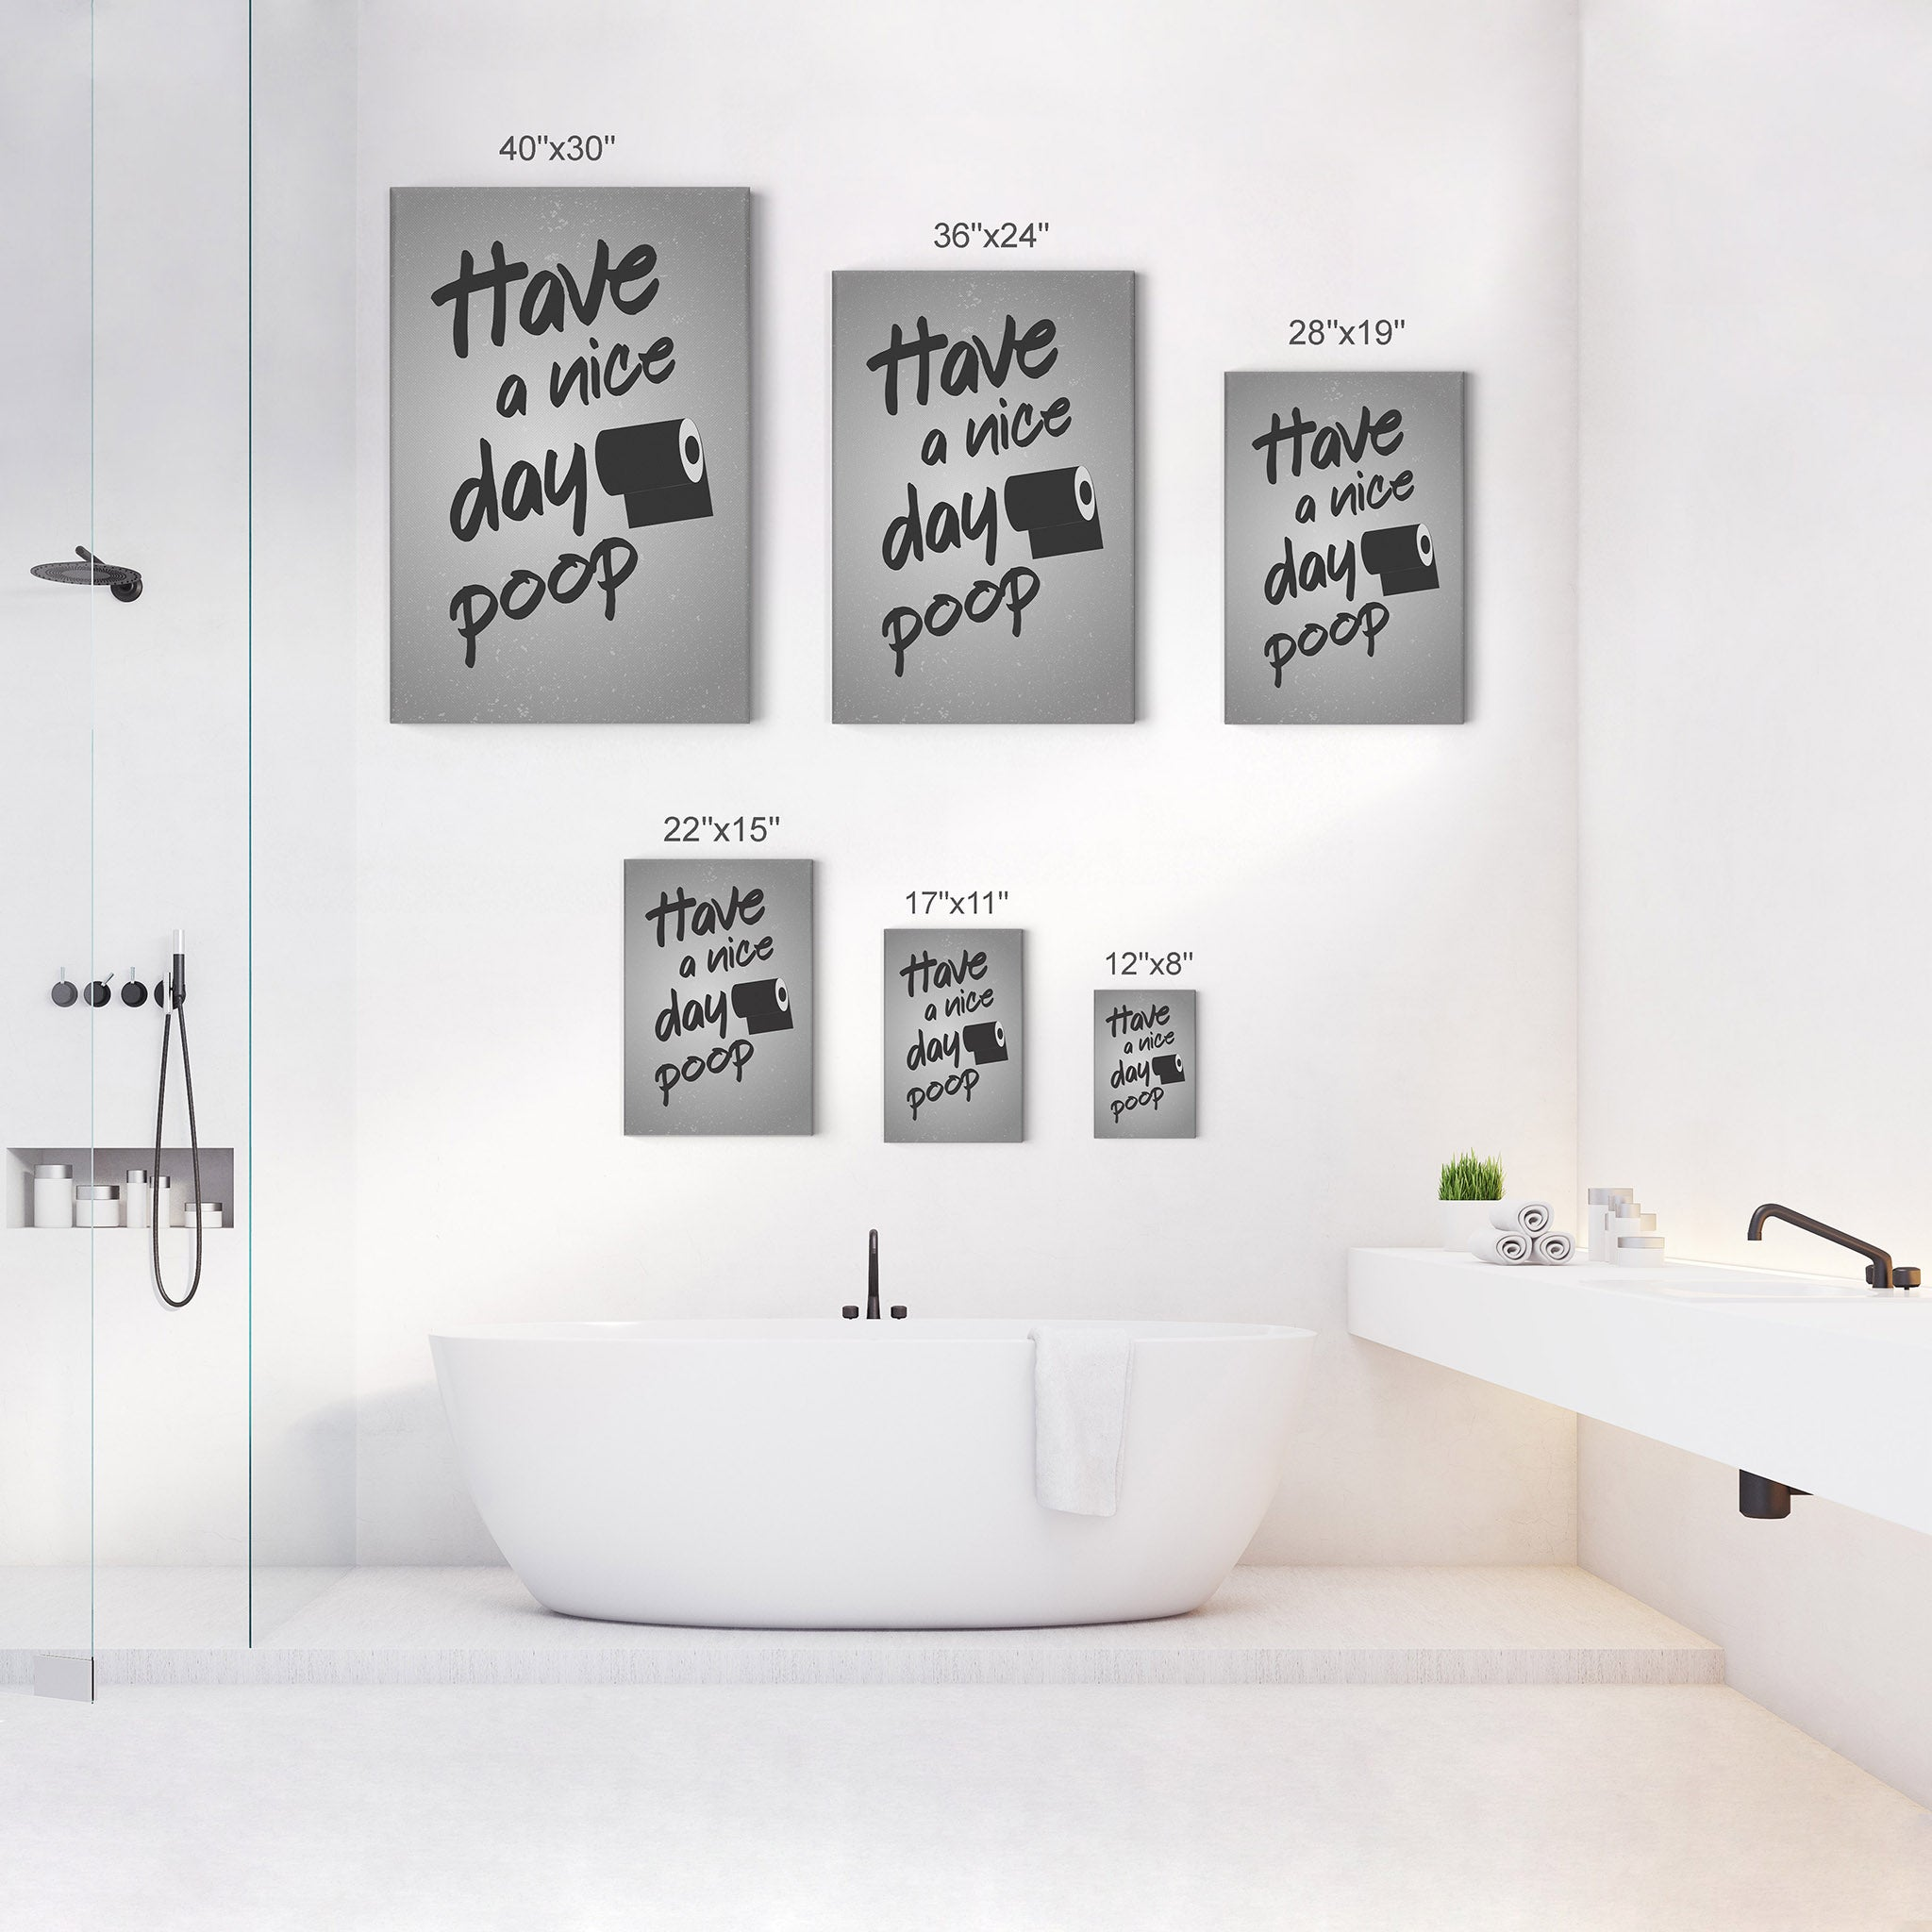 Have A Nice Day Poop Funny Bathroom Quote Wall Decor Smile Art Design